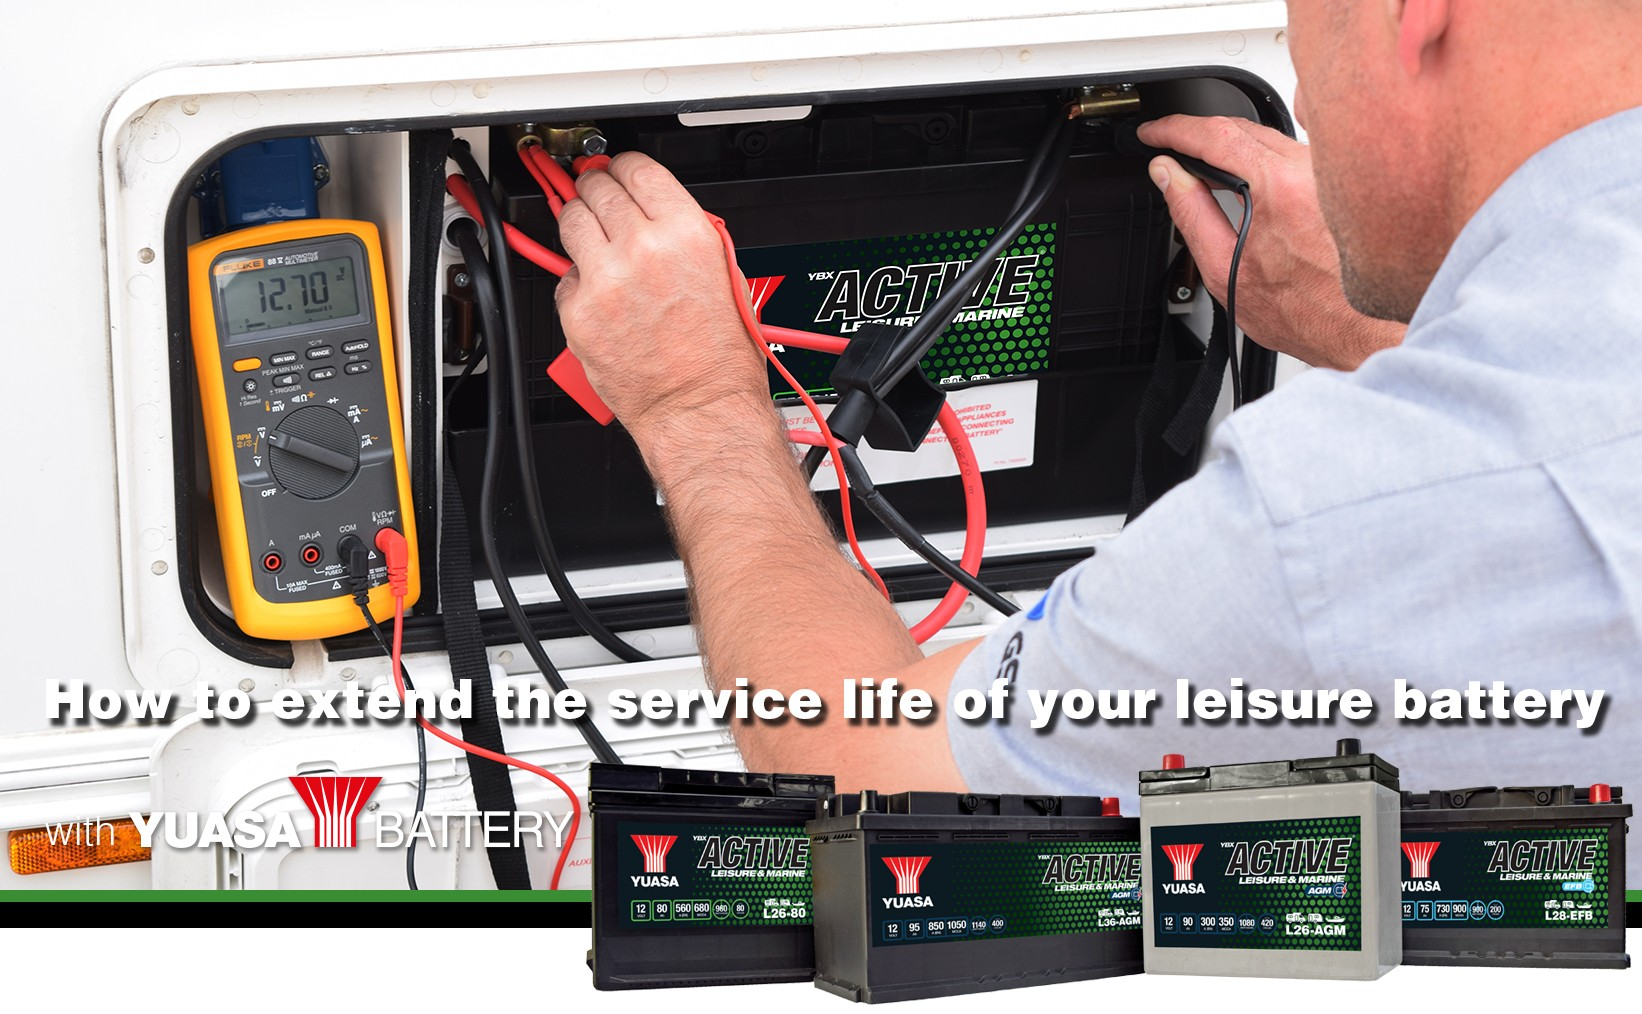 How to extend the service life of your leisure battery